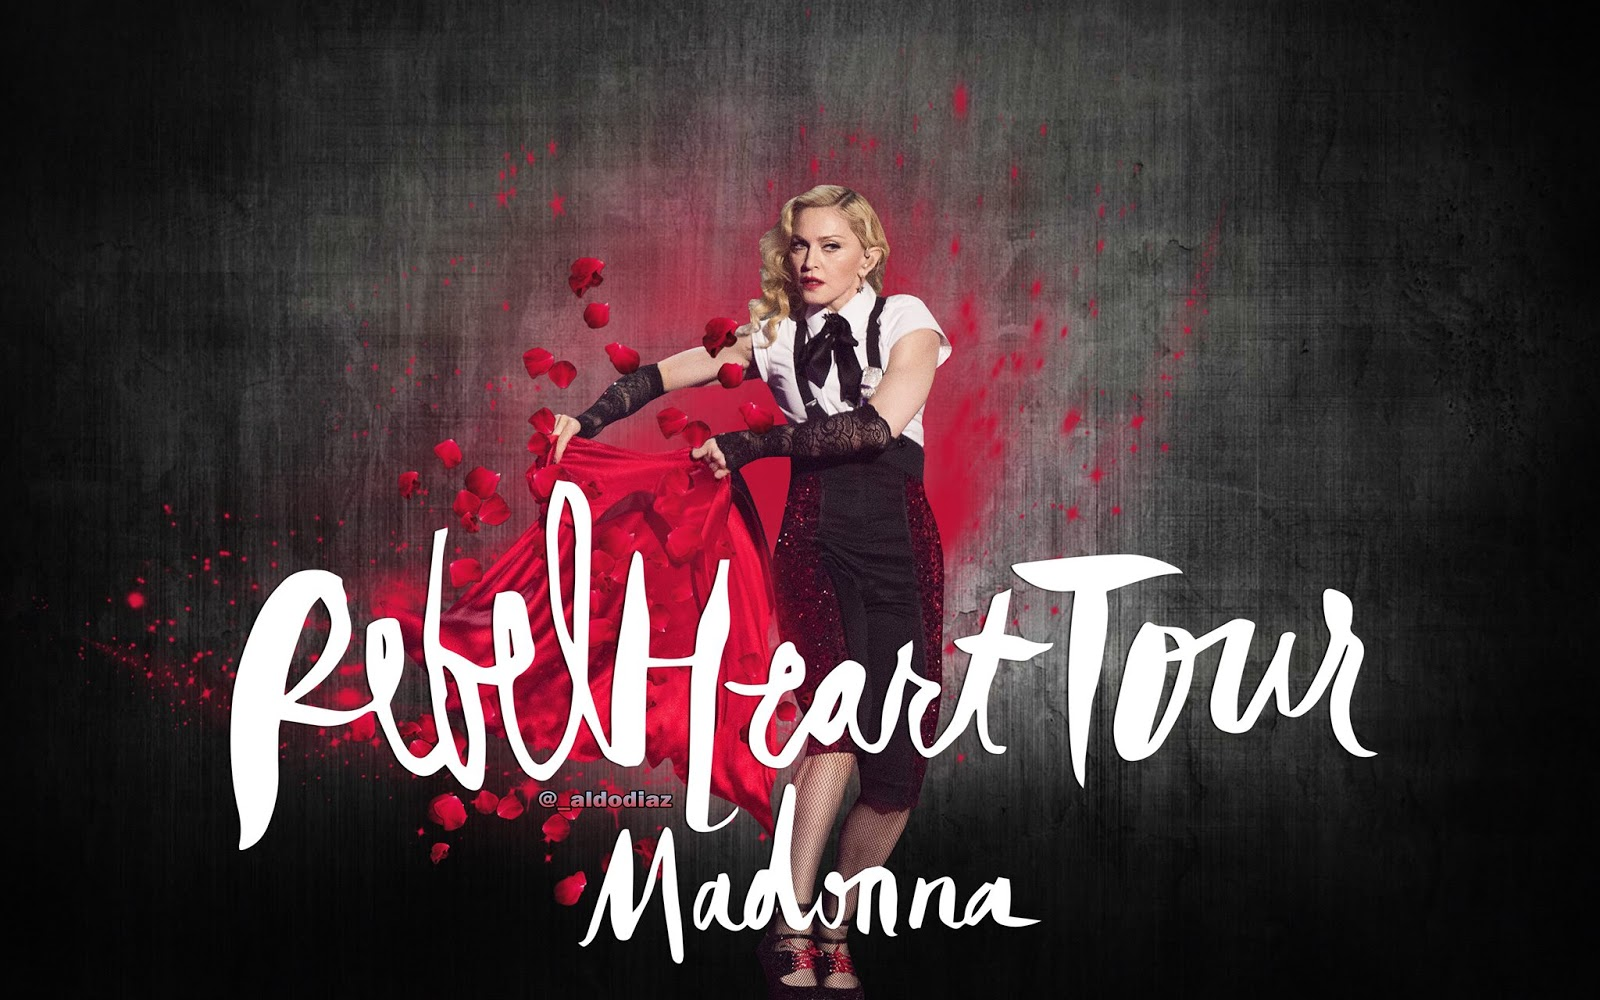 madonna fanmade covers: rebel heart tour - wallpaper